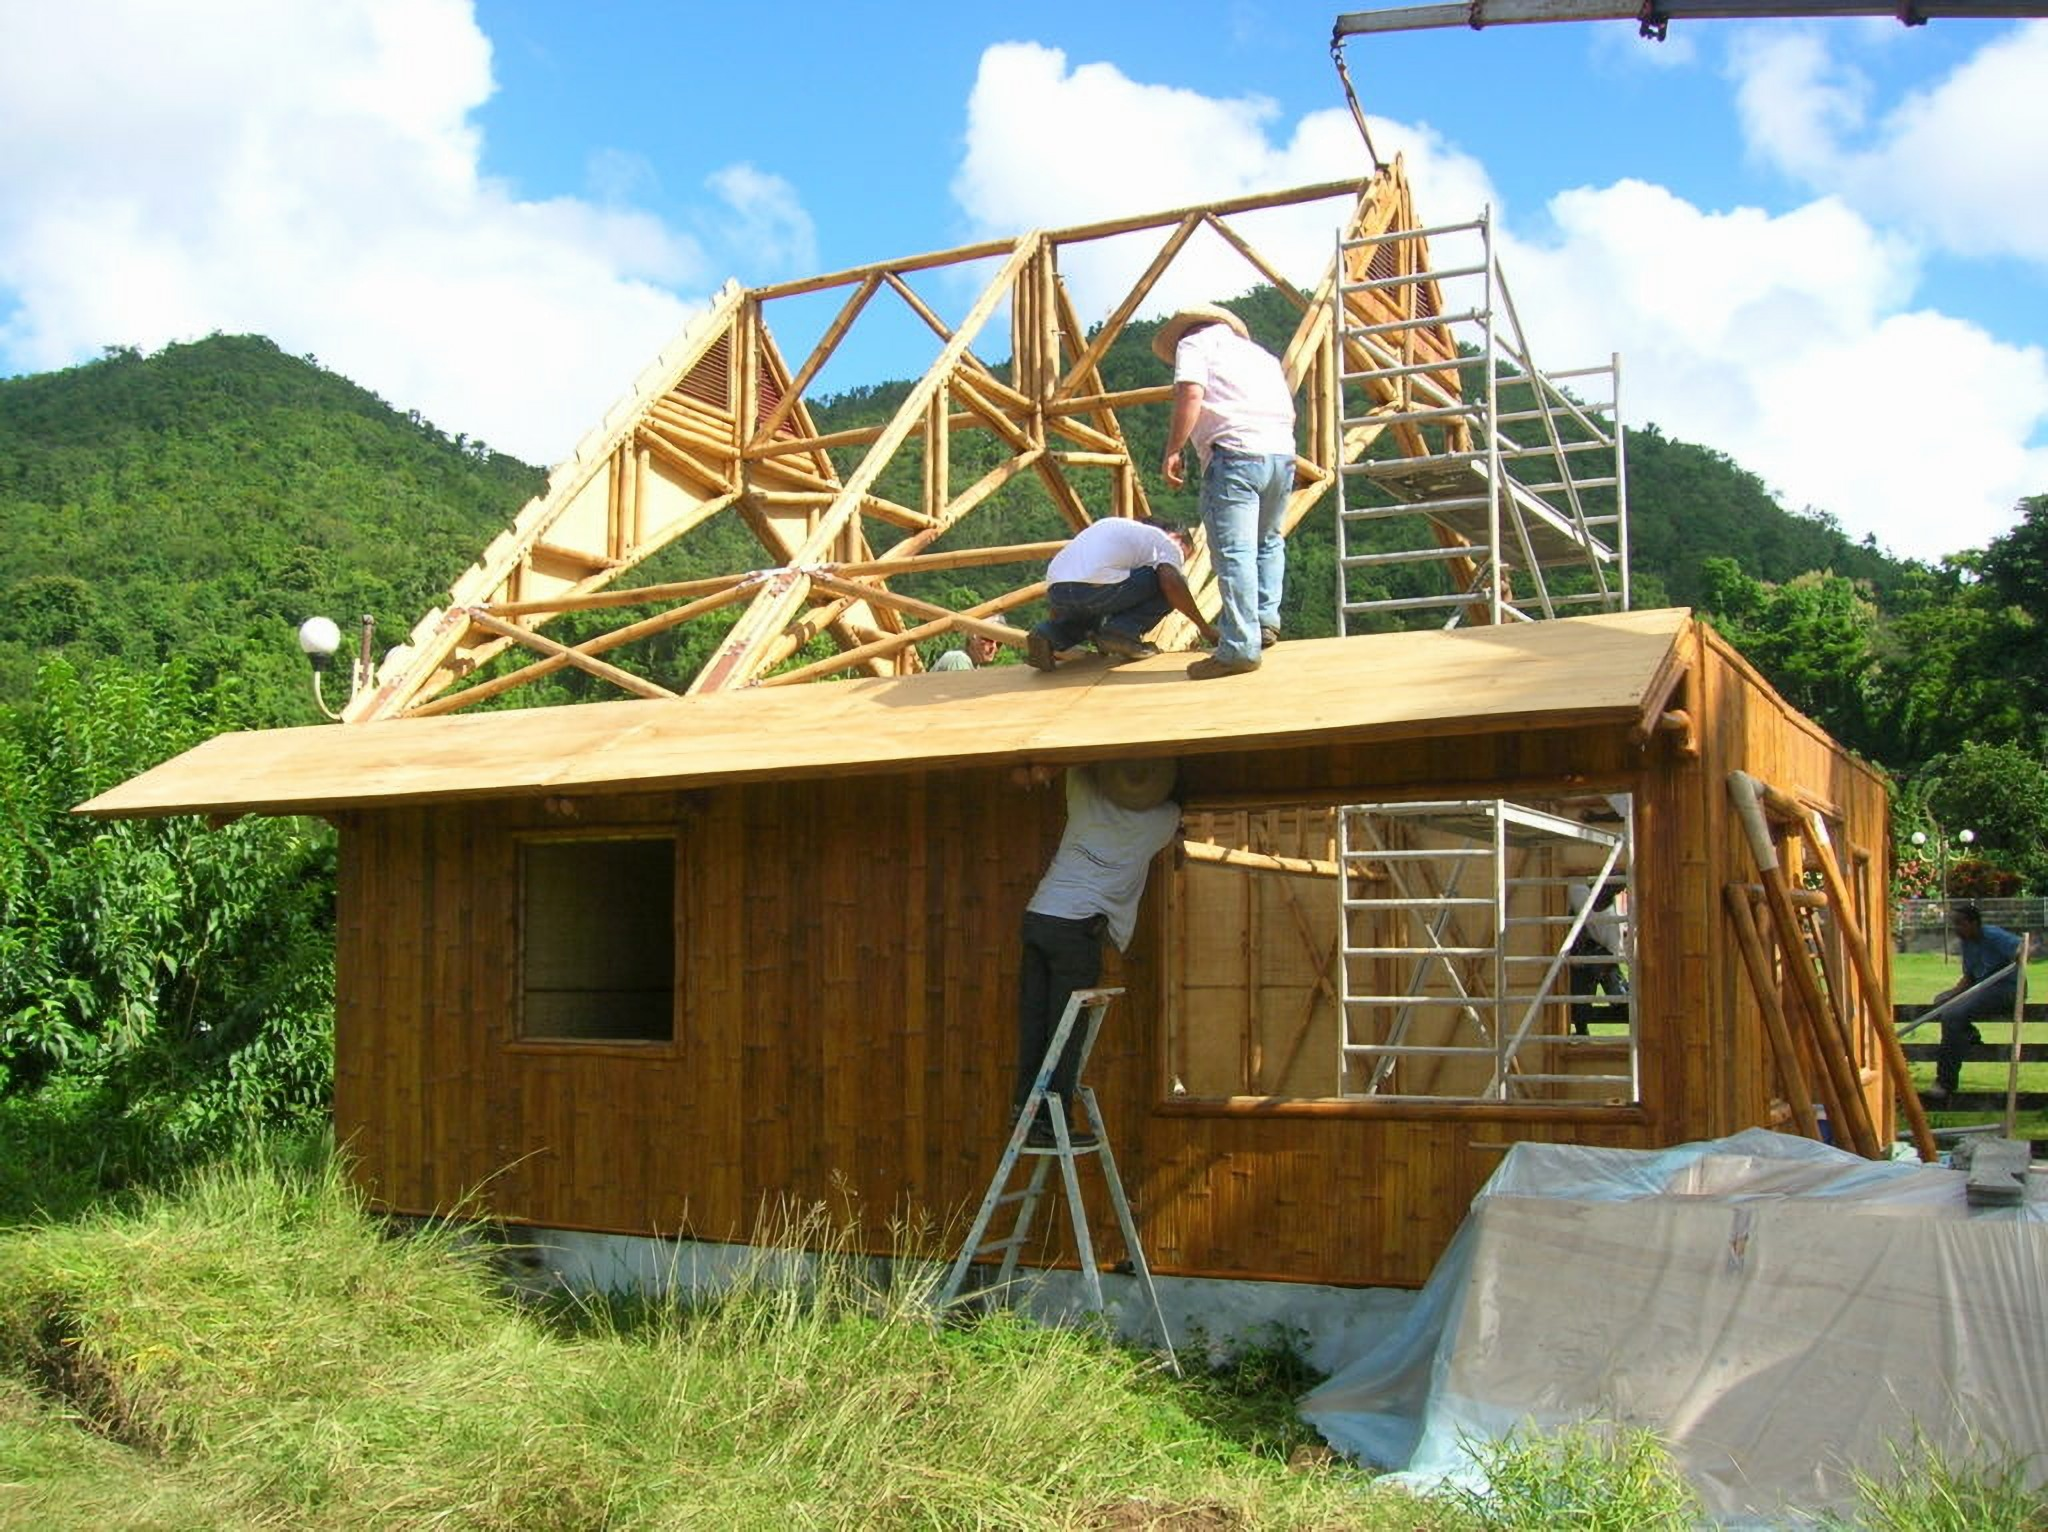 File:Construction maison bambou.jpg